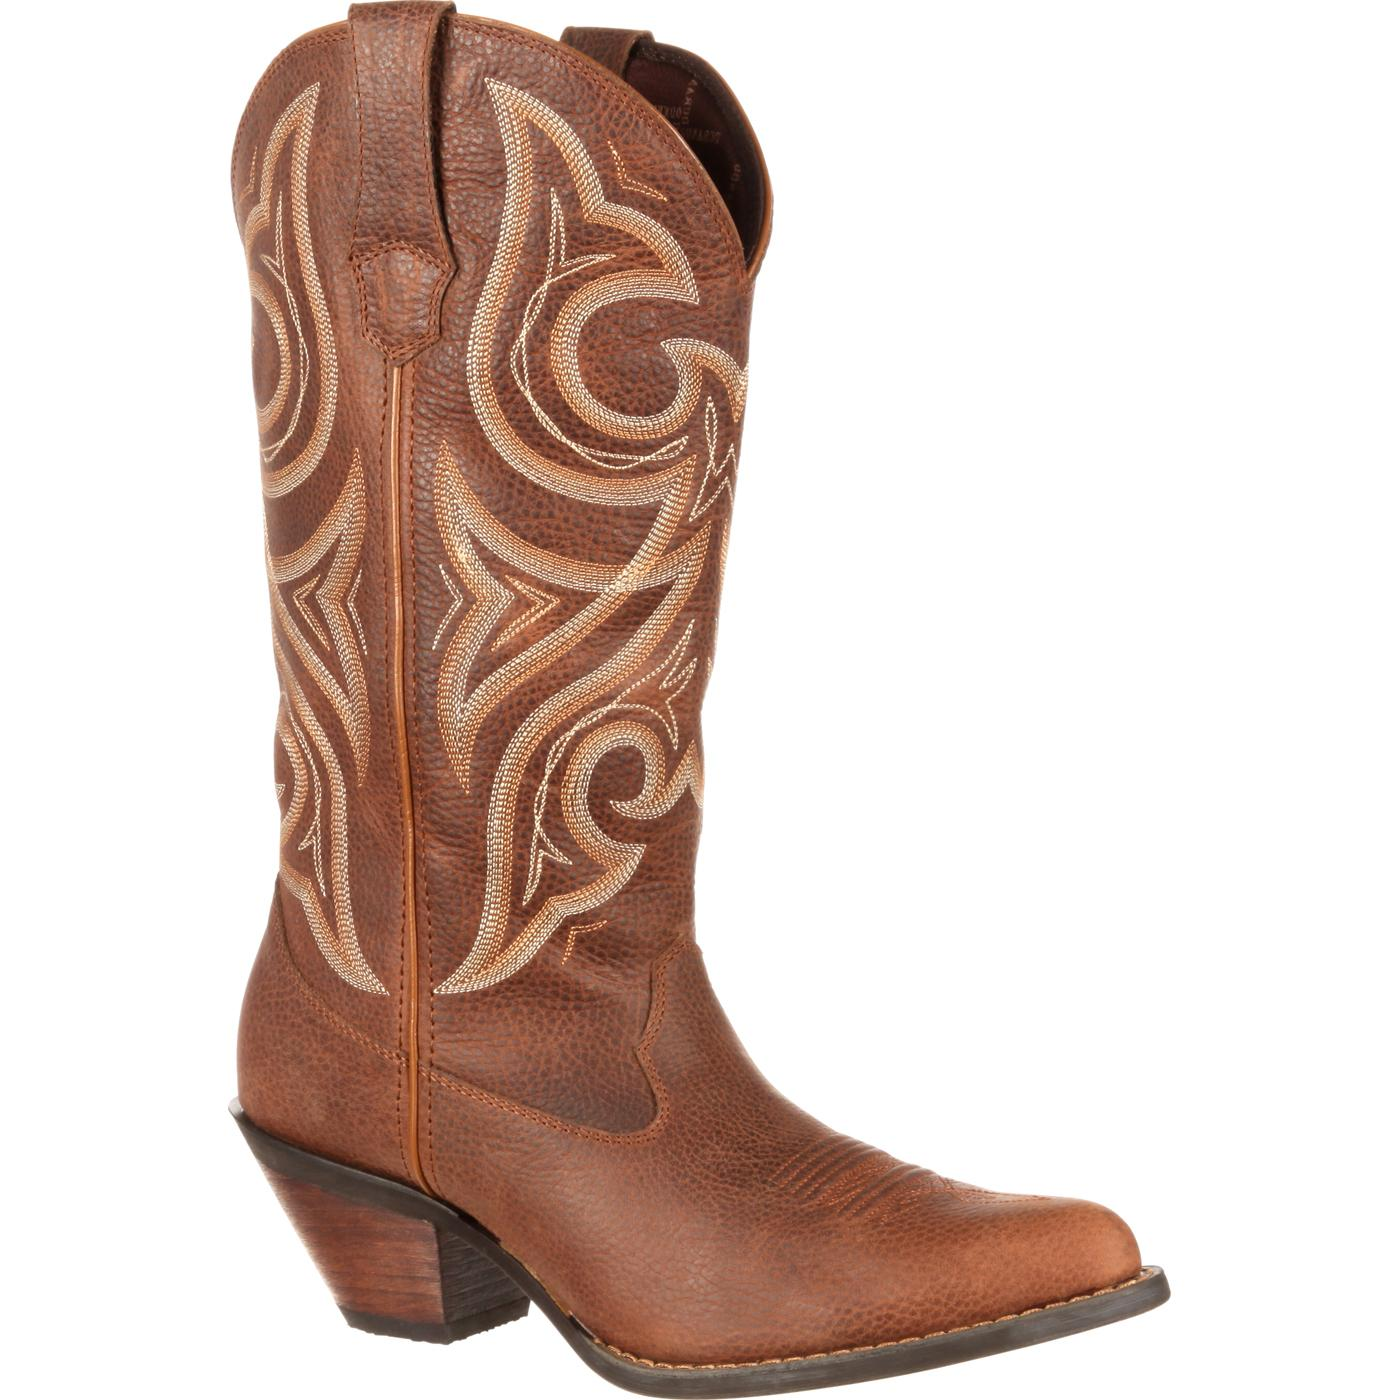 8267d7a3f23 Crush by Durango Jealousy Women s Wide Calf Western Boot